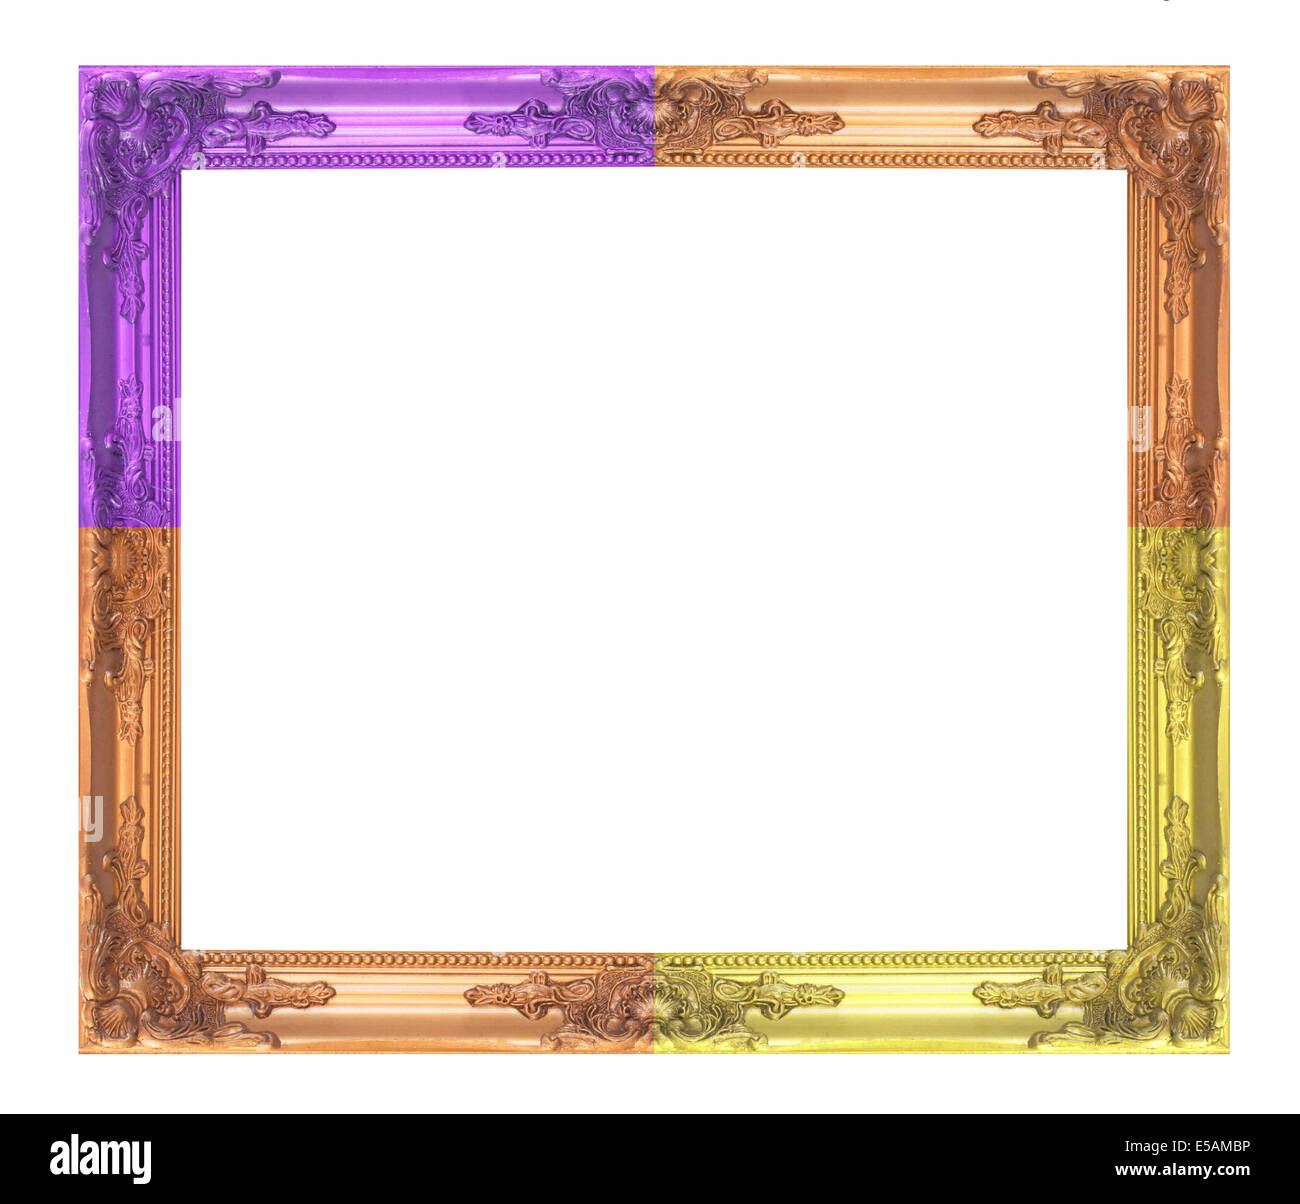 Frame  multi-colored wooden frame isolated on a white background - Stock Image